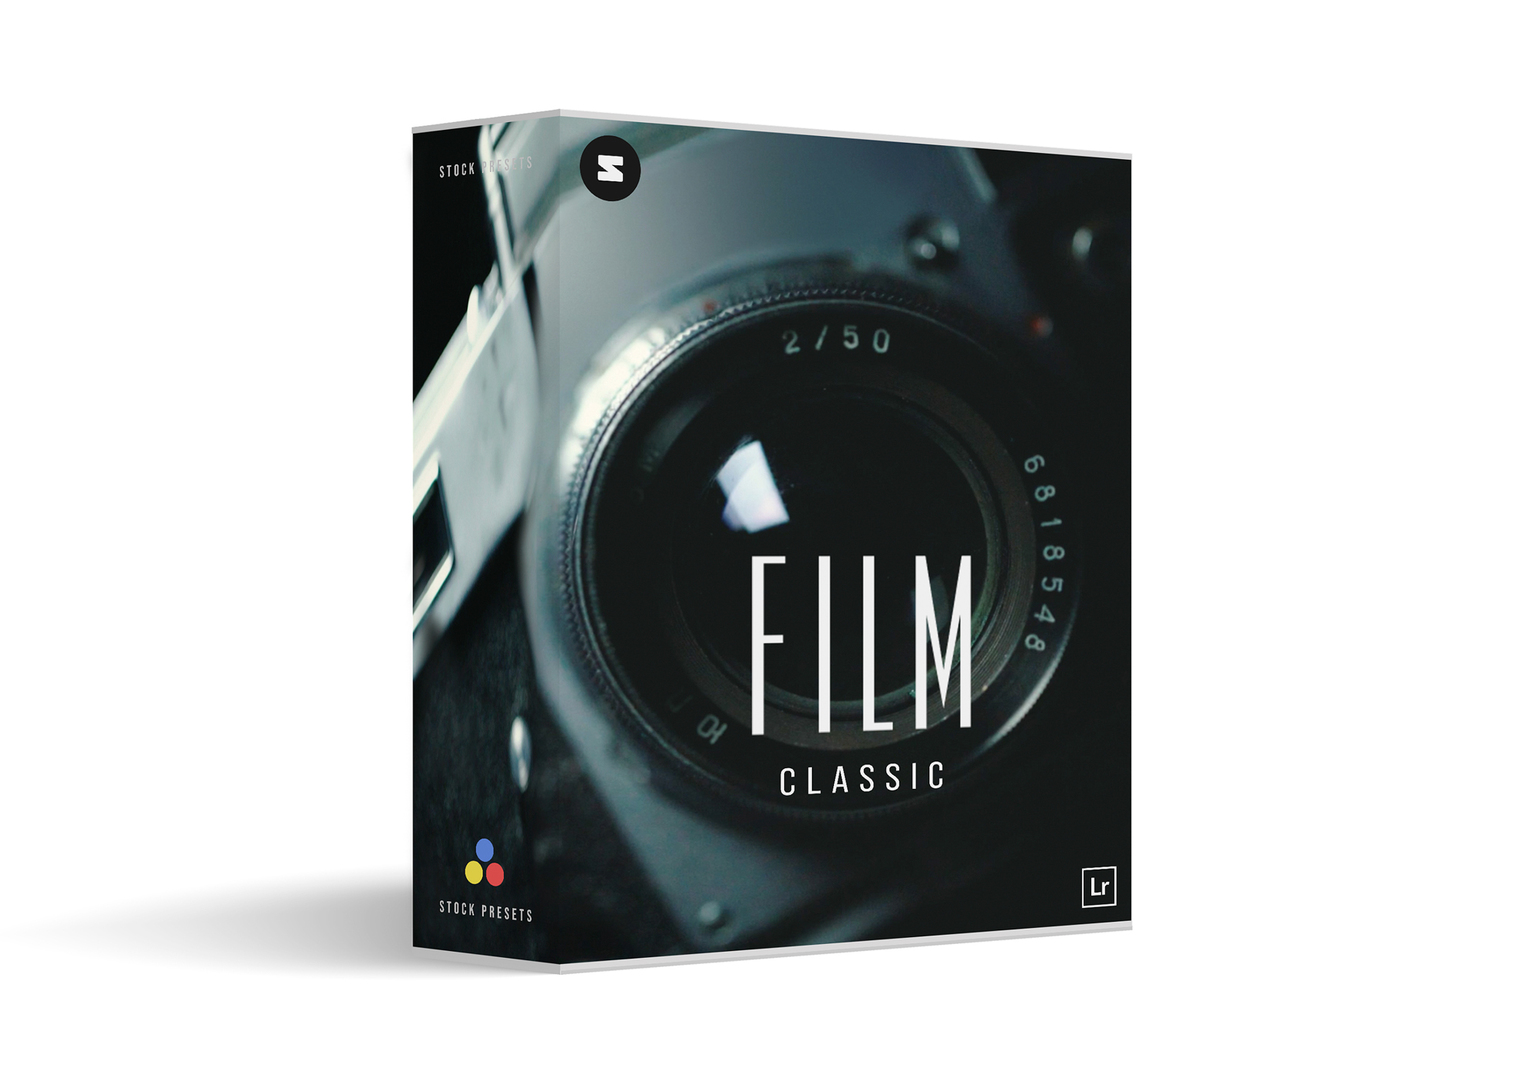 Film-Classic-Lightroom-Presets-&-Profiles-Stockpresets.com